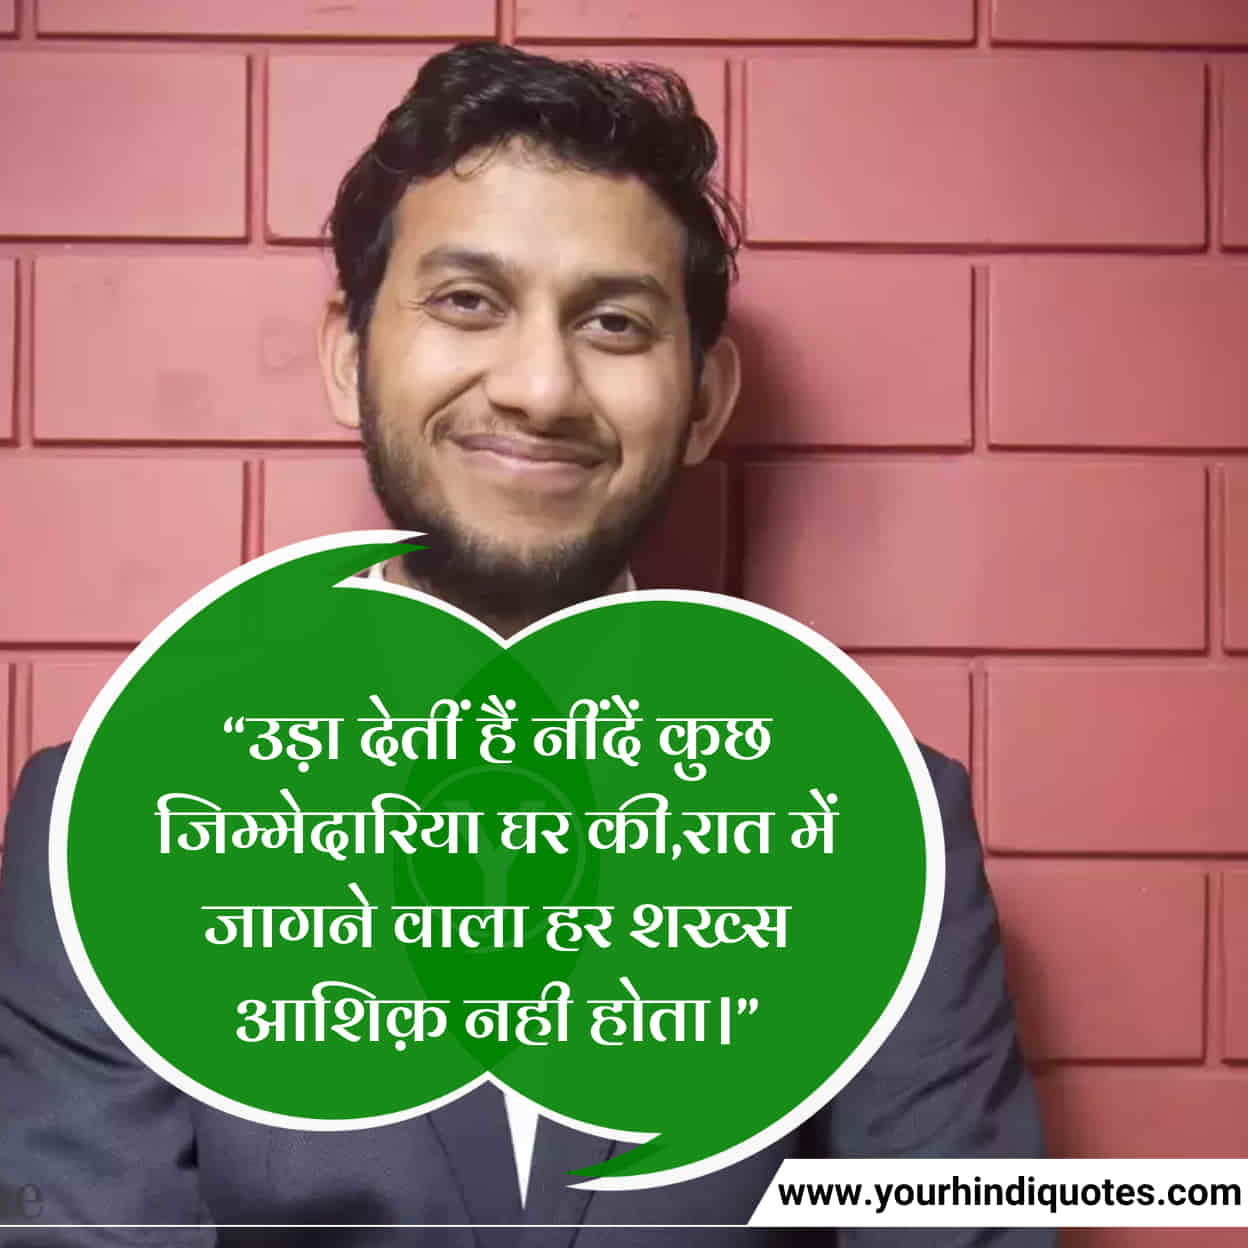 Best Motivational Status for Students